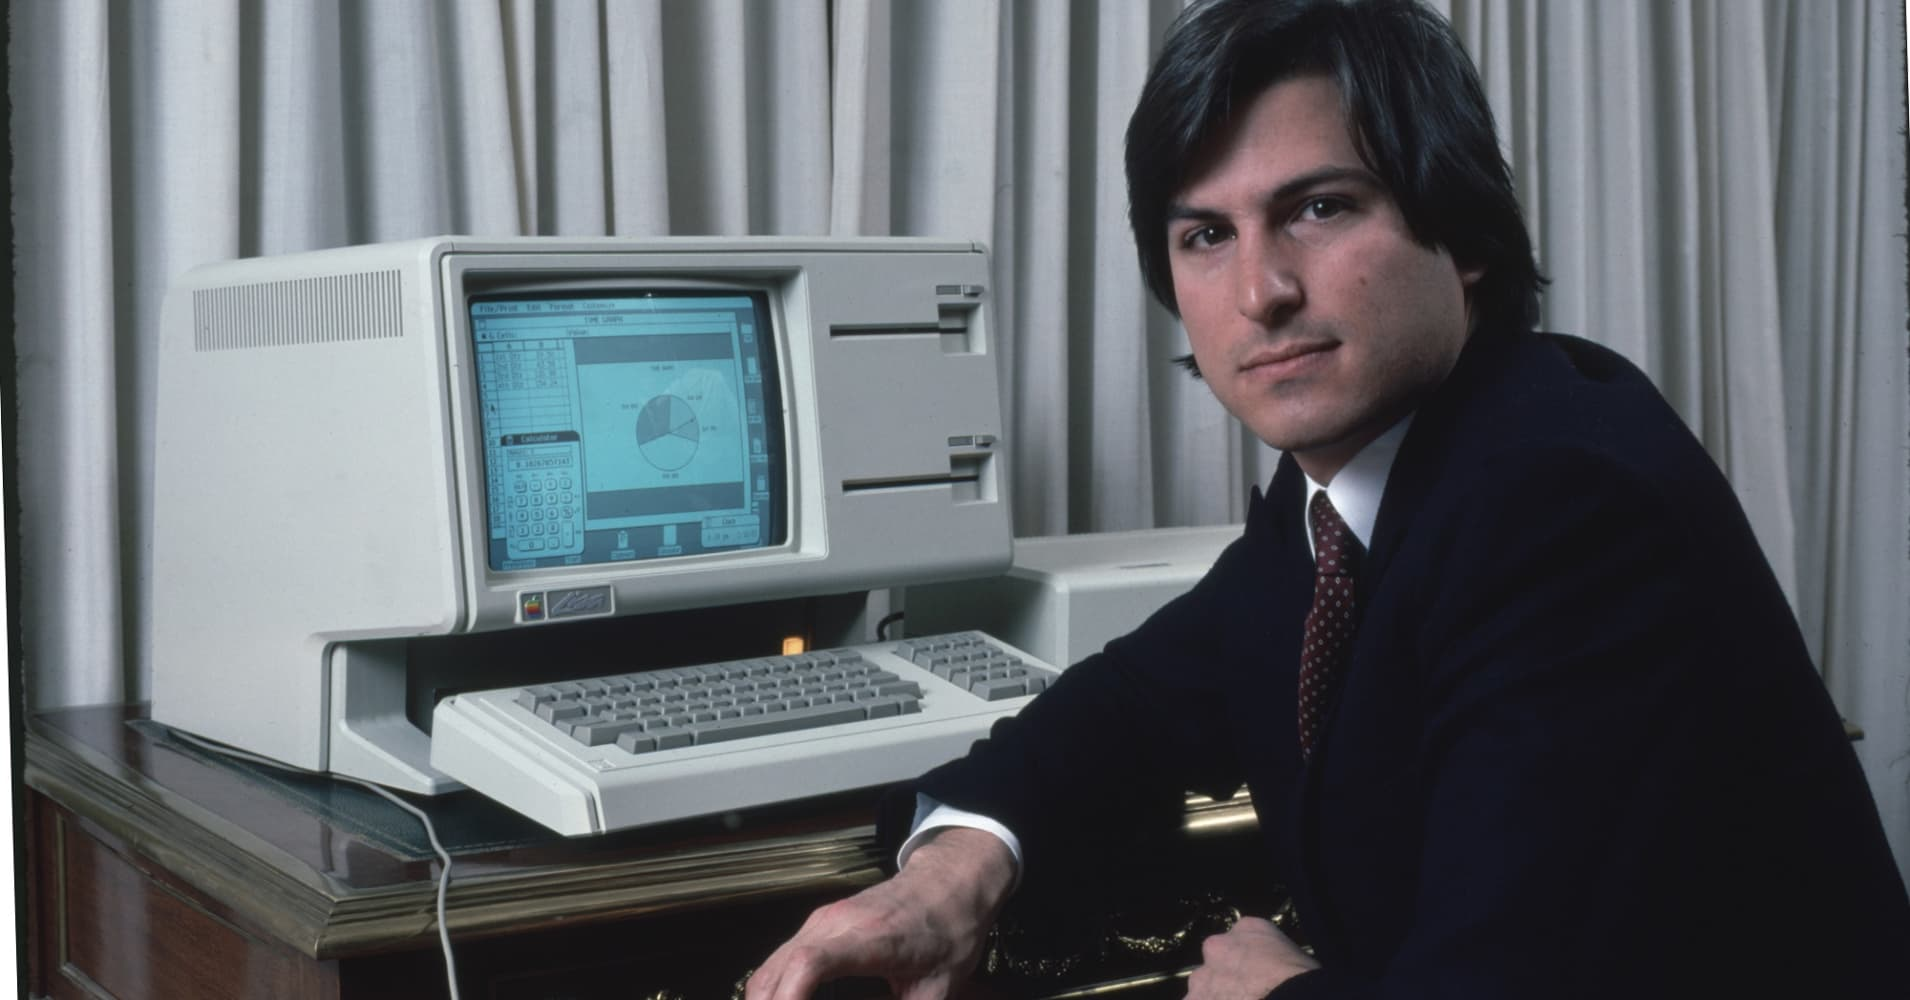 Remember these failed Apple products? They were some of the tech giant's biggest flops